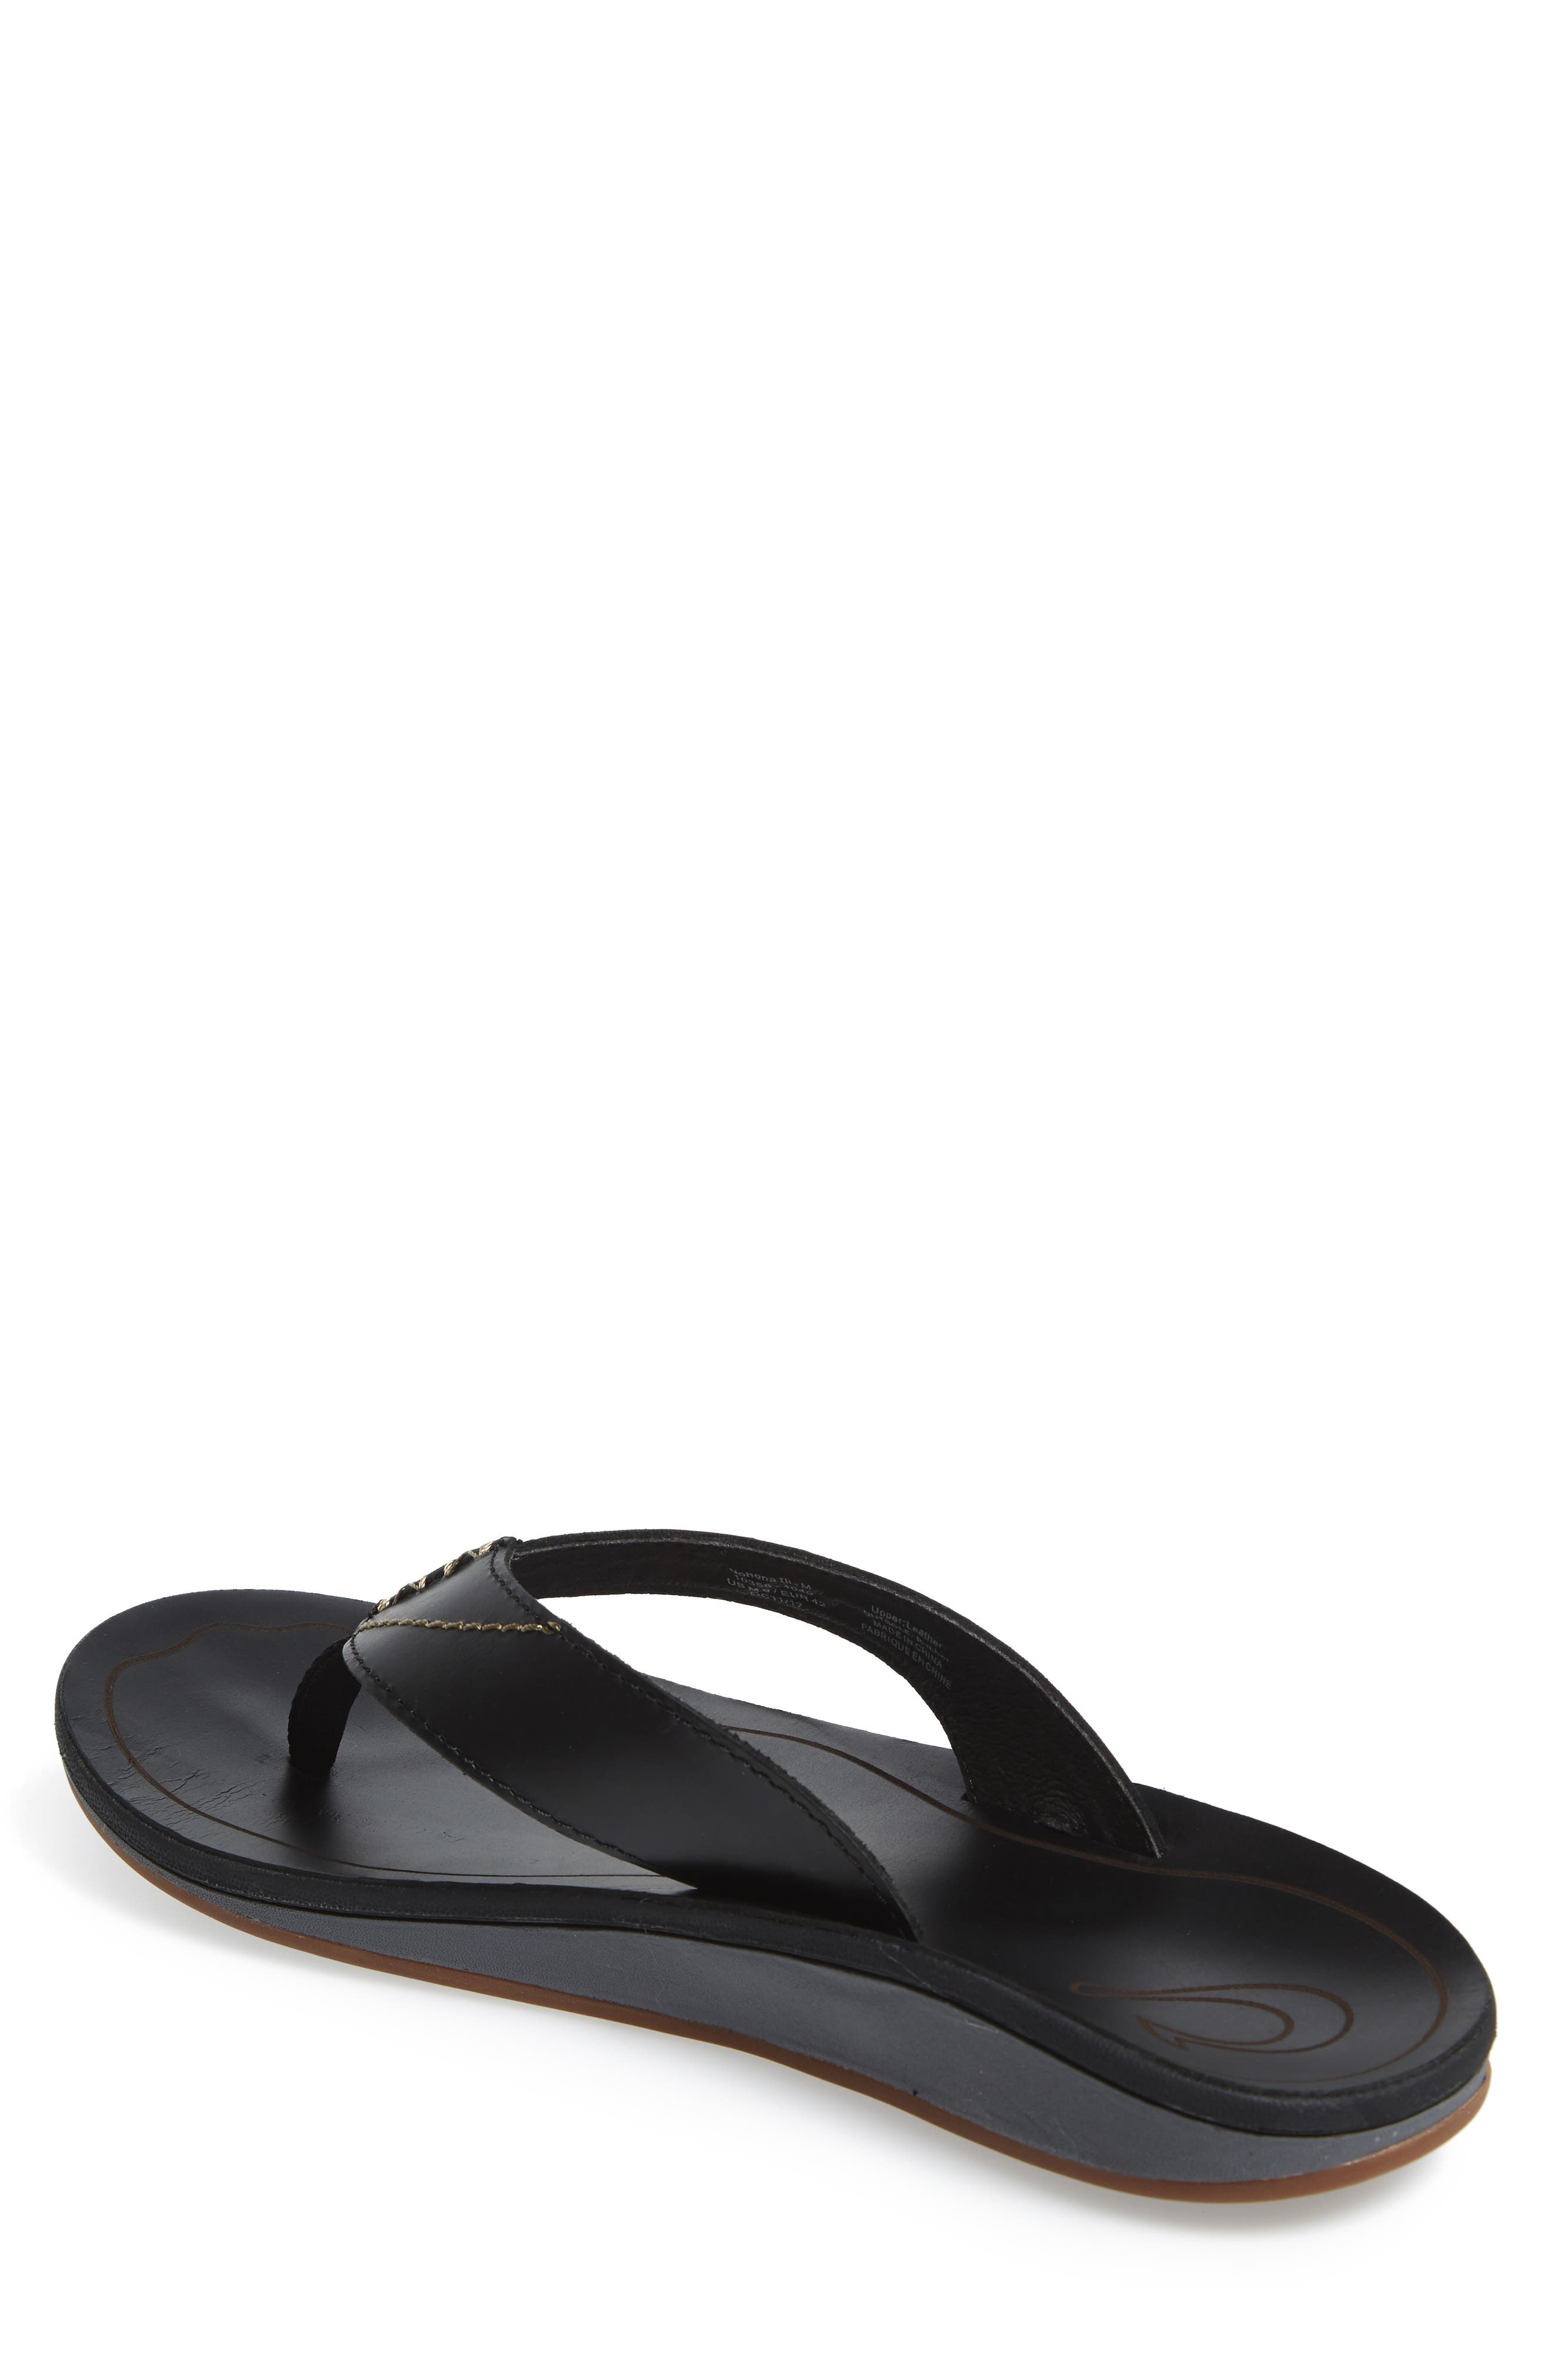 Nohona Ili Flip Flop,                             Alternate thumbnail 2, color,                             BLACK/ BLACK LEATHER